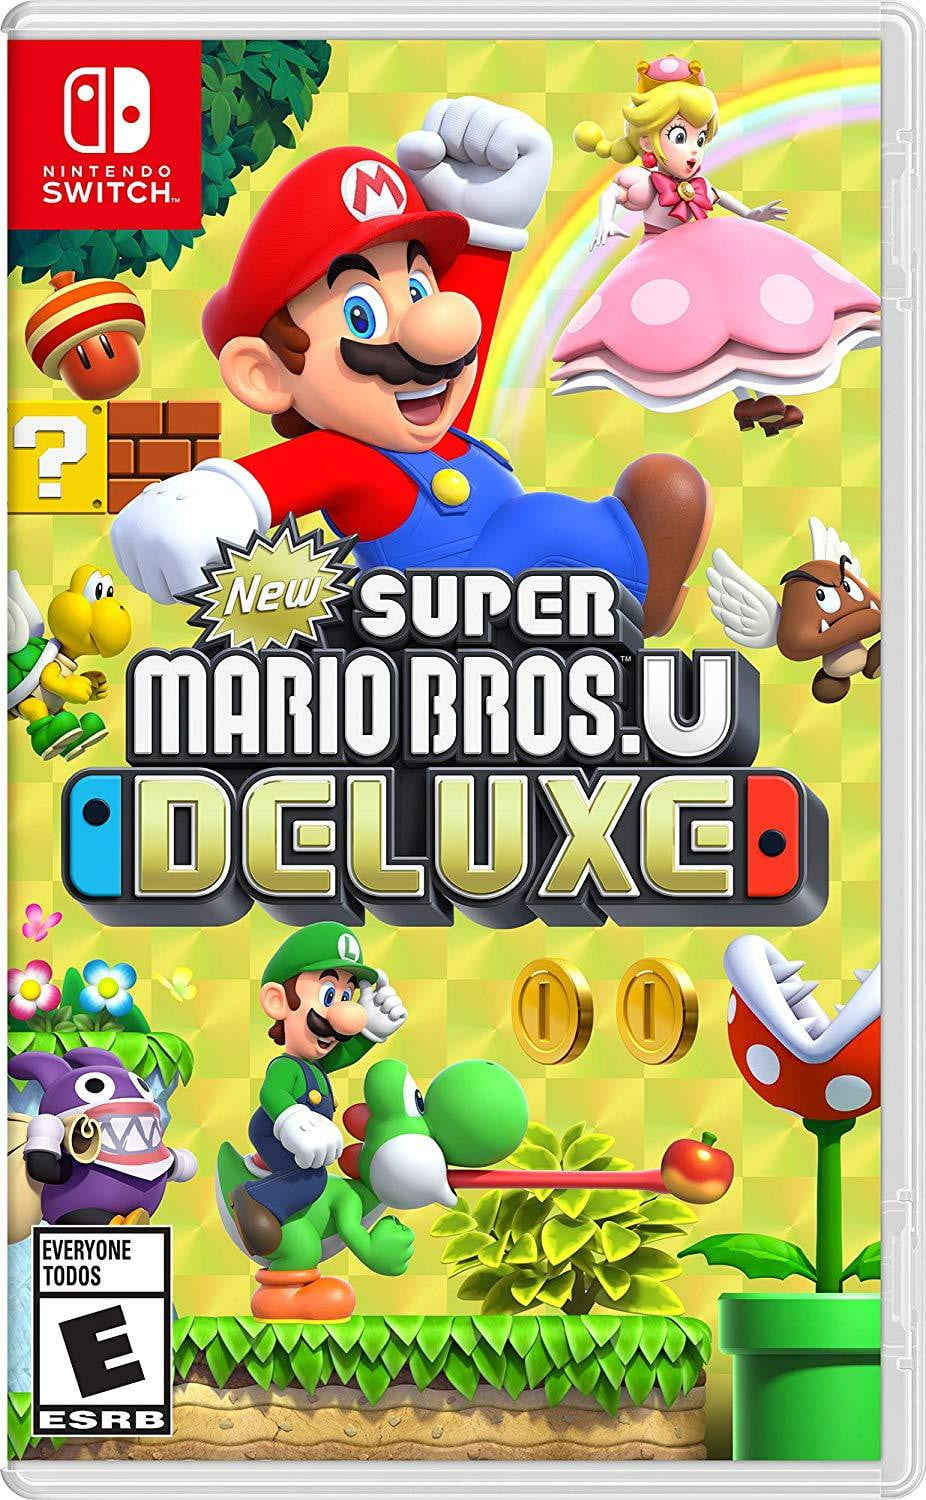 Buy New Super Mario BROS. U Deluxe (Switch) Nintendo Switch in Egypt - Shamy Stores